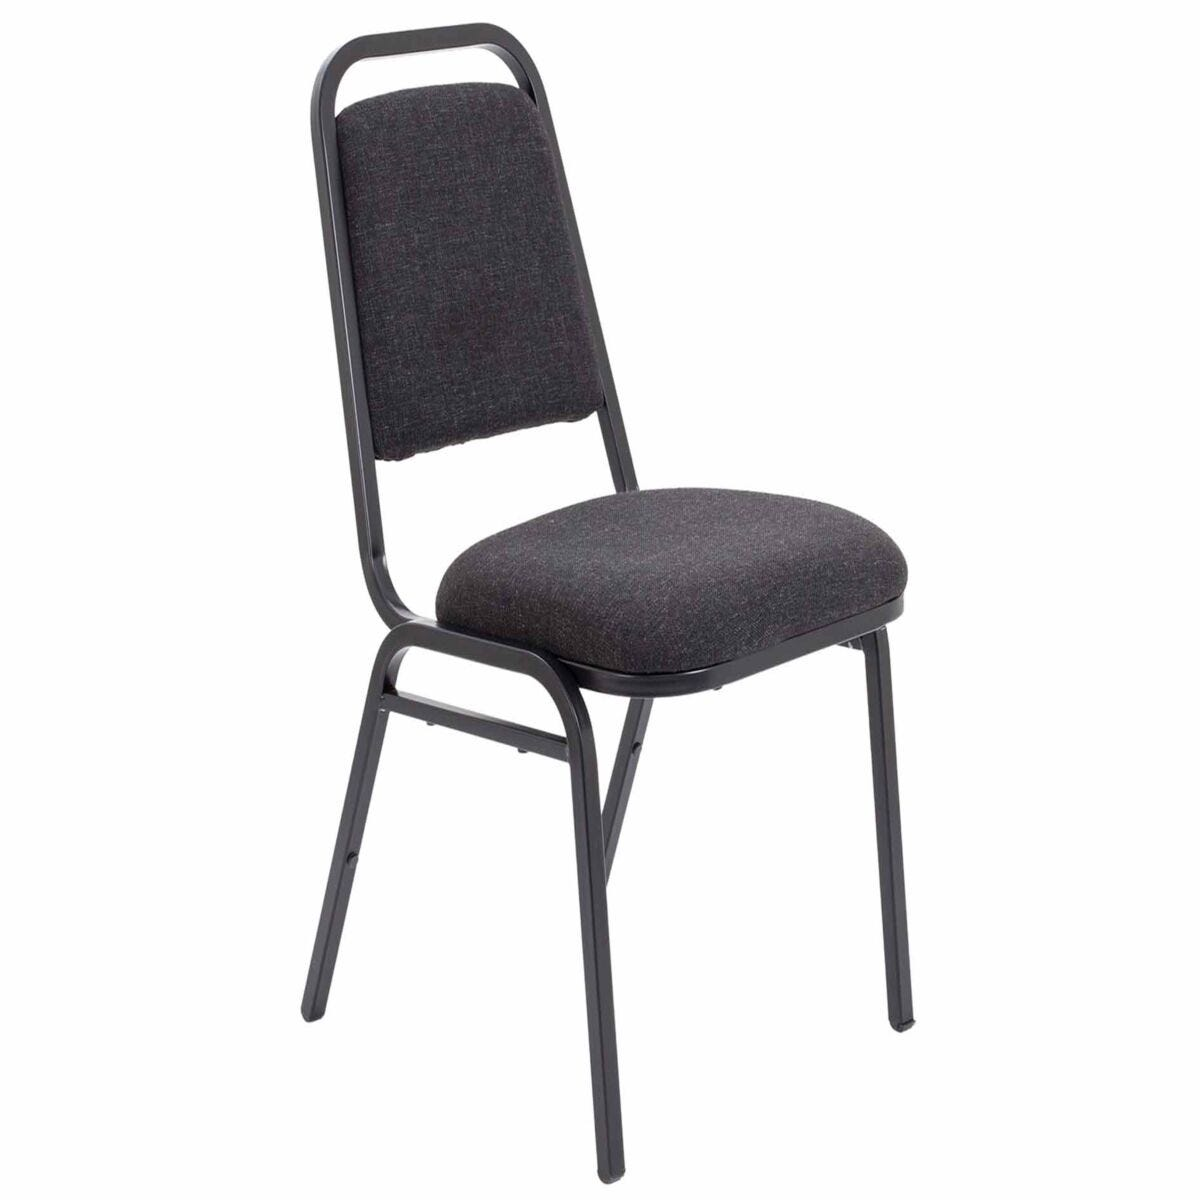 TC Office Padded Banqueting Chair